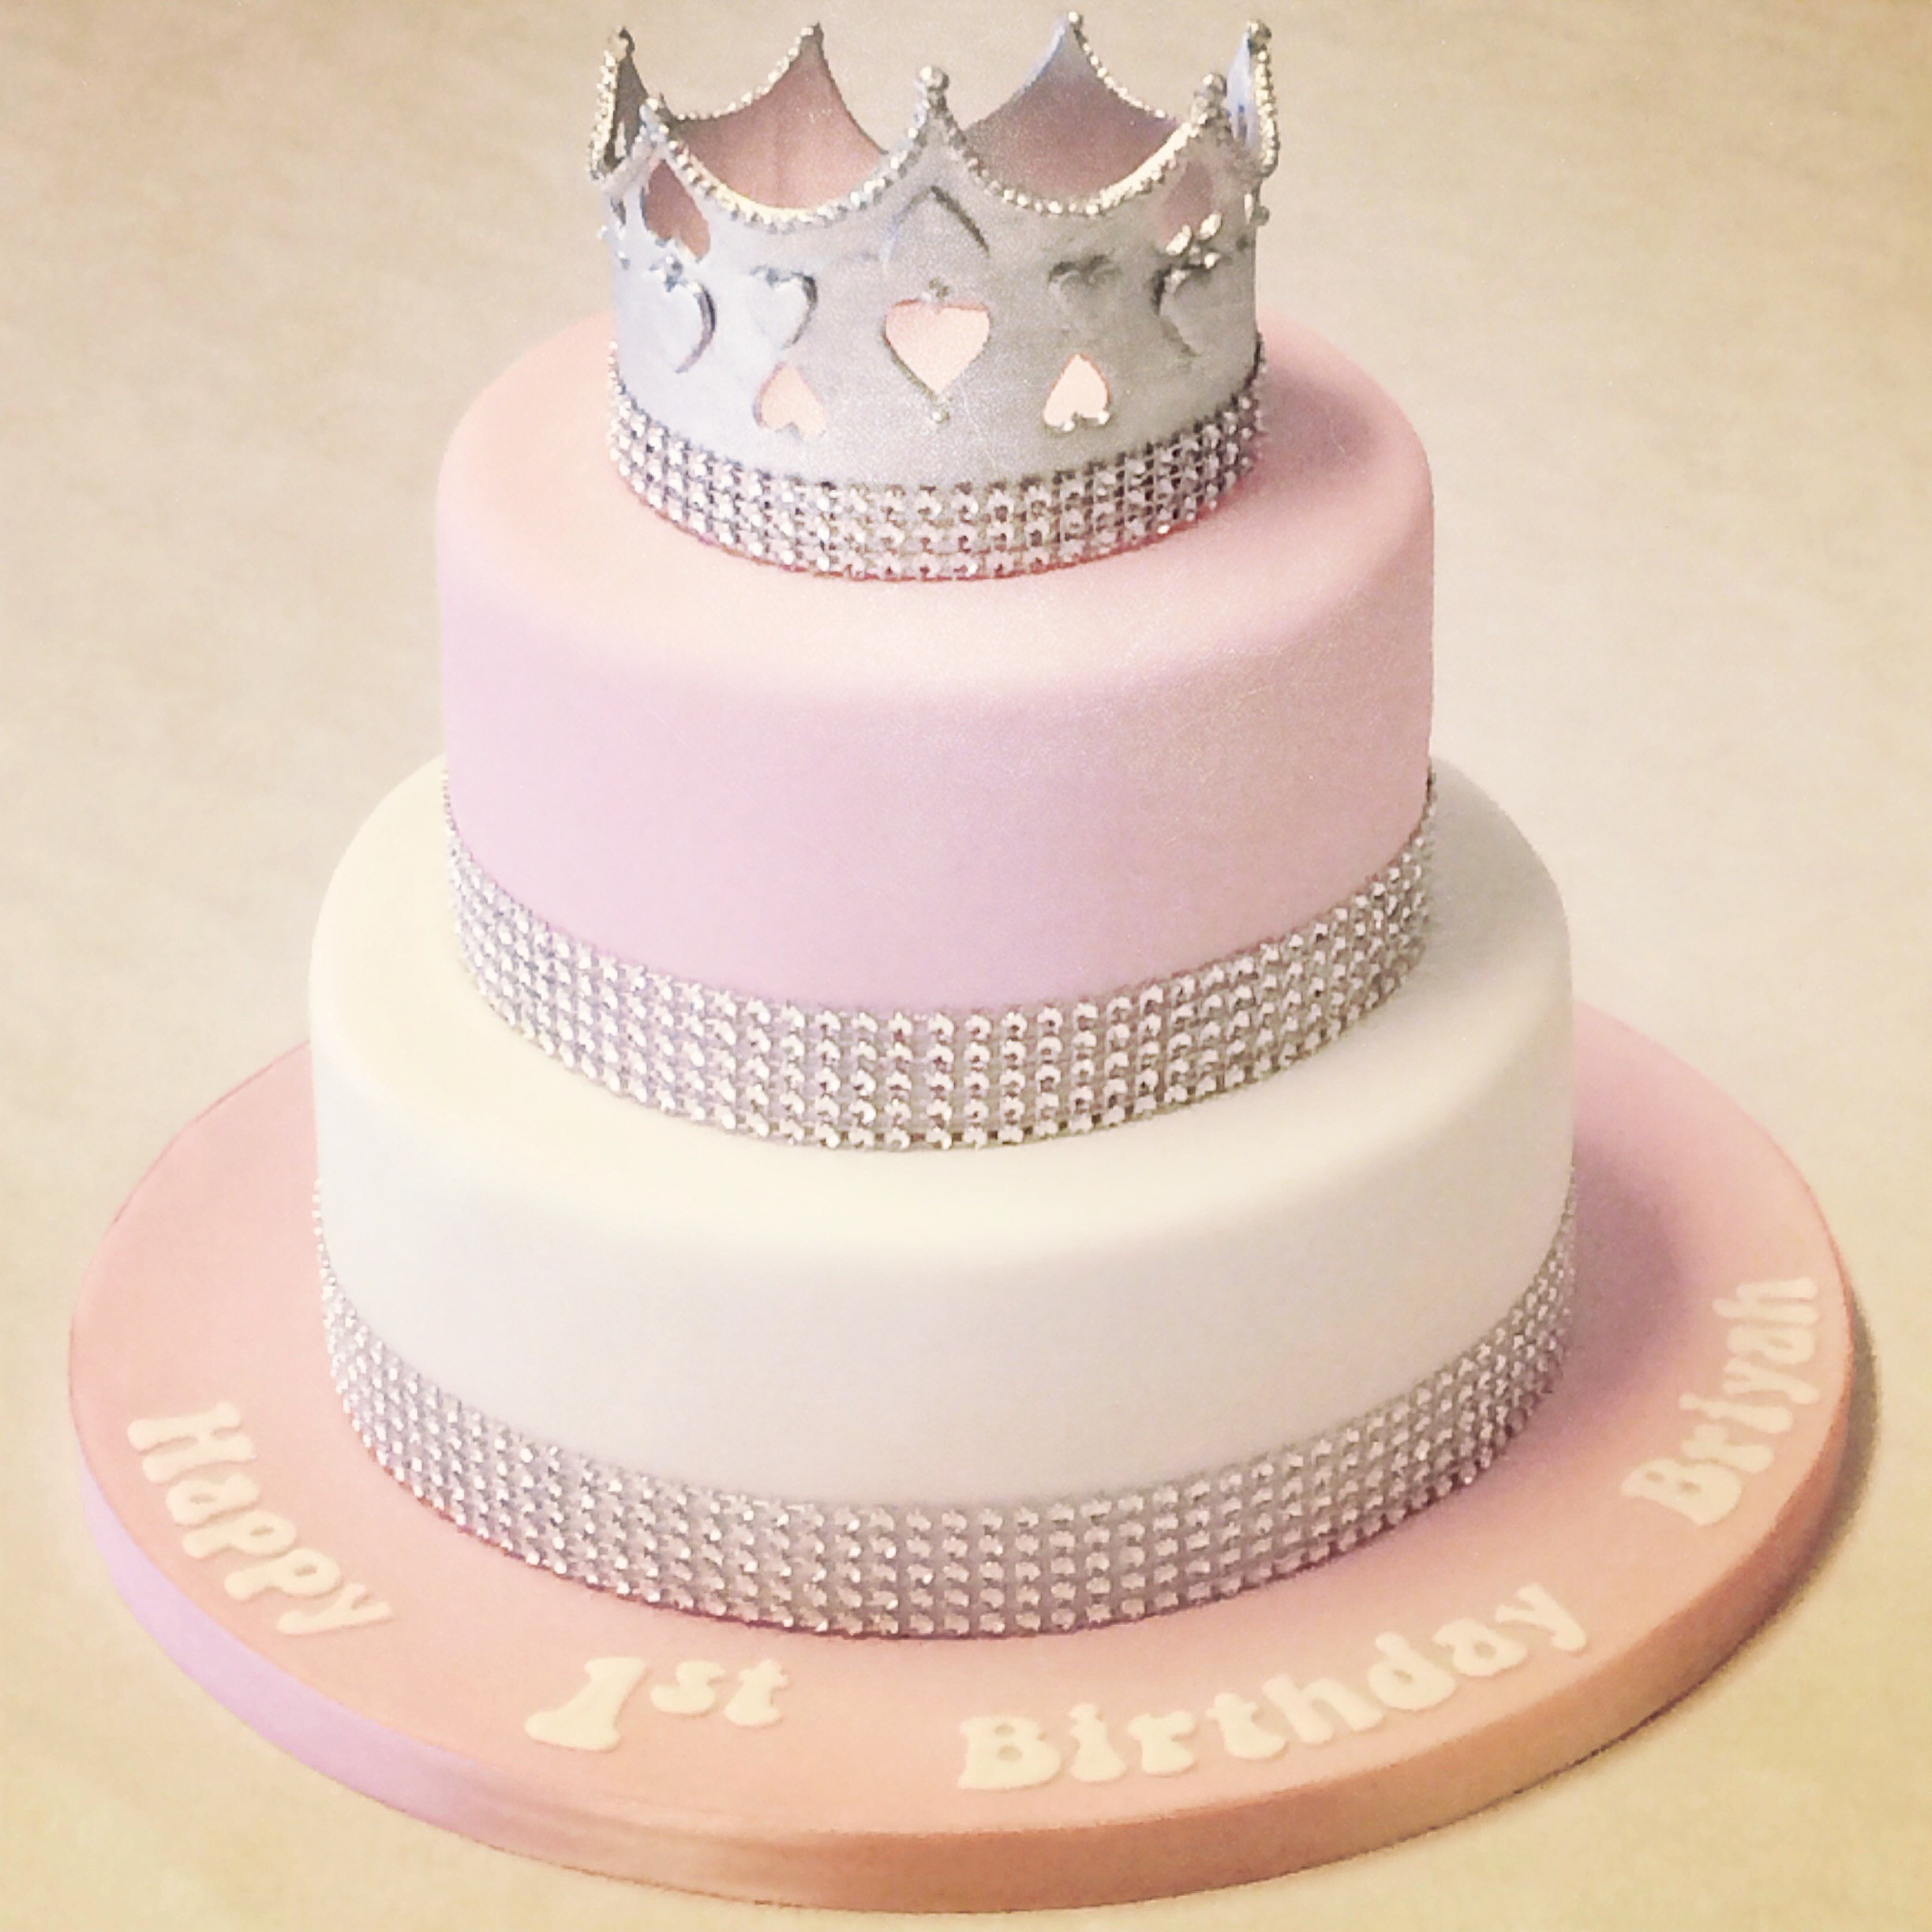 Best ideas about 2 Tier Birthday Cake . Save or Pin 2 Tier Pink and White Princess Cake Children s Birthday Now.